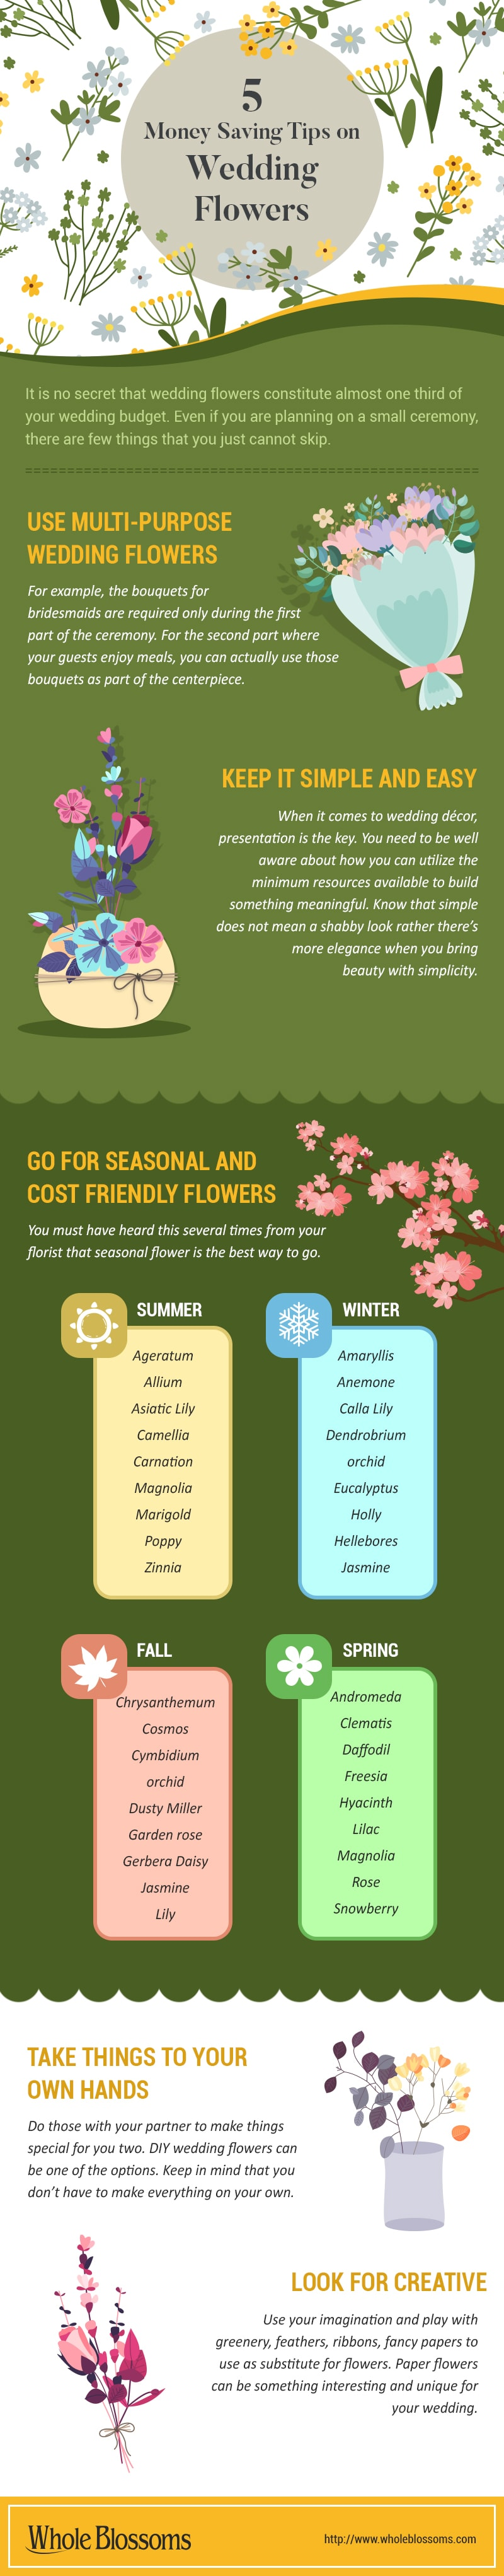 5 Money Saving Tips on Wedding Flowers